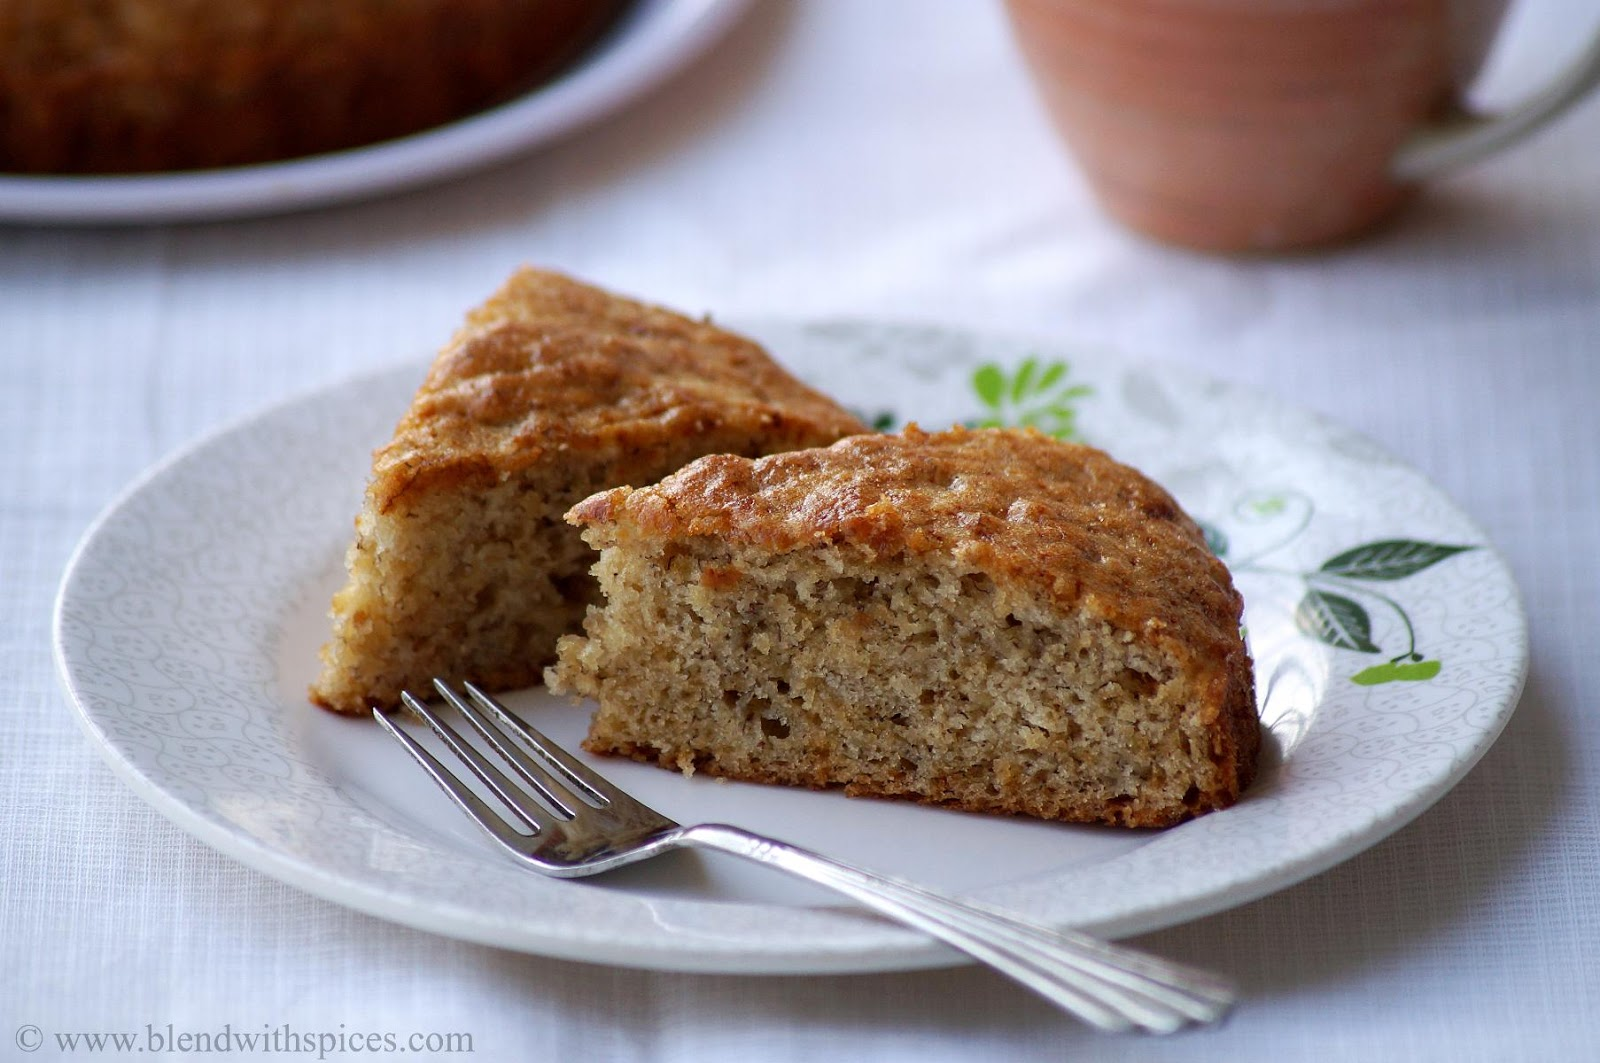 Eggless banana cake recipe vegan banana cake recipe step by step eggless banana cake recipe vegan banana cake recipe step by step pictures forumfinder Images